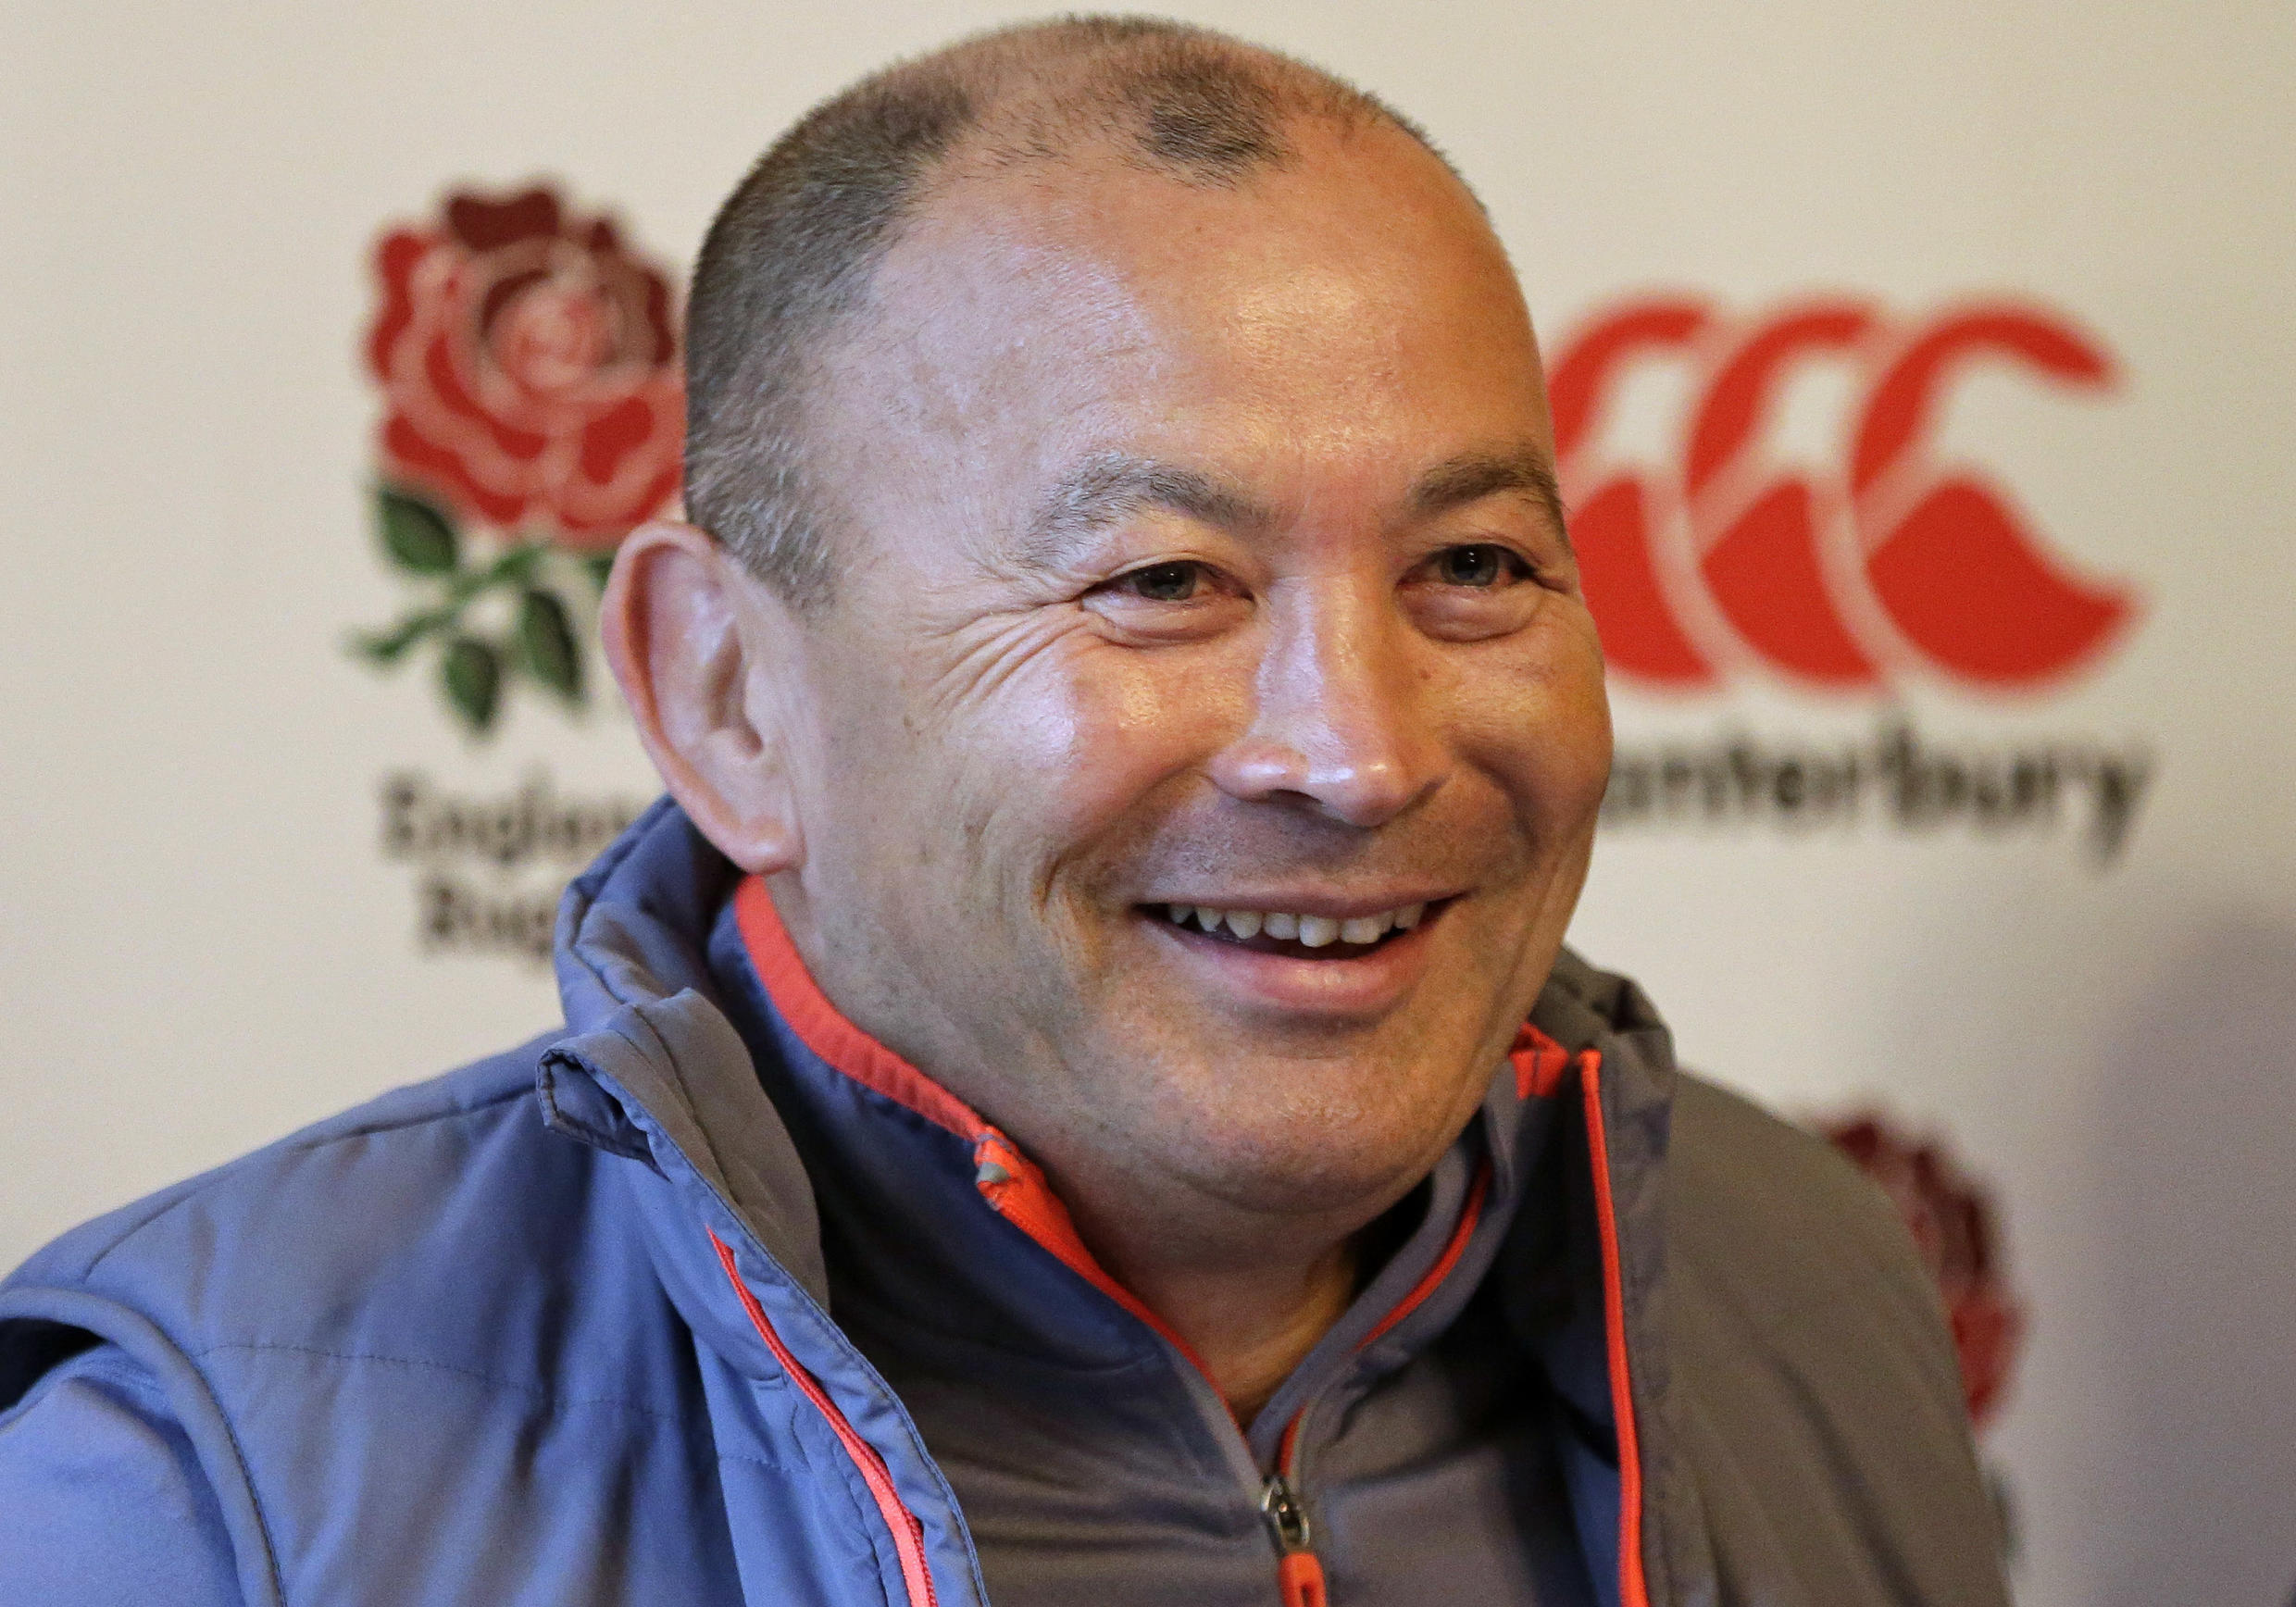 Eddie Jones took over as England coach in November 2015 and is trying to lead England to a 16th consecutive victory.